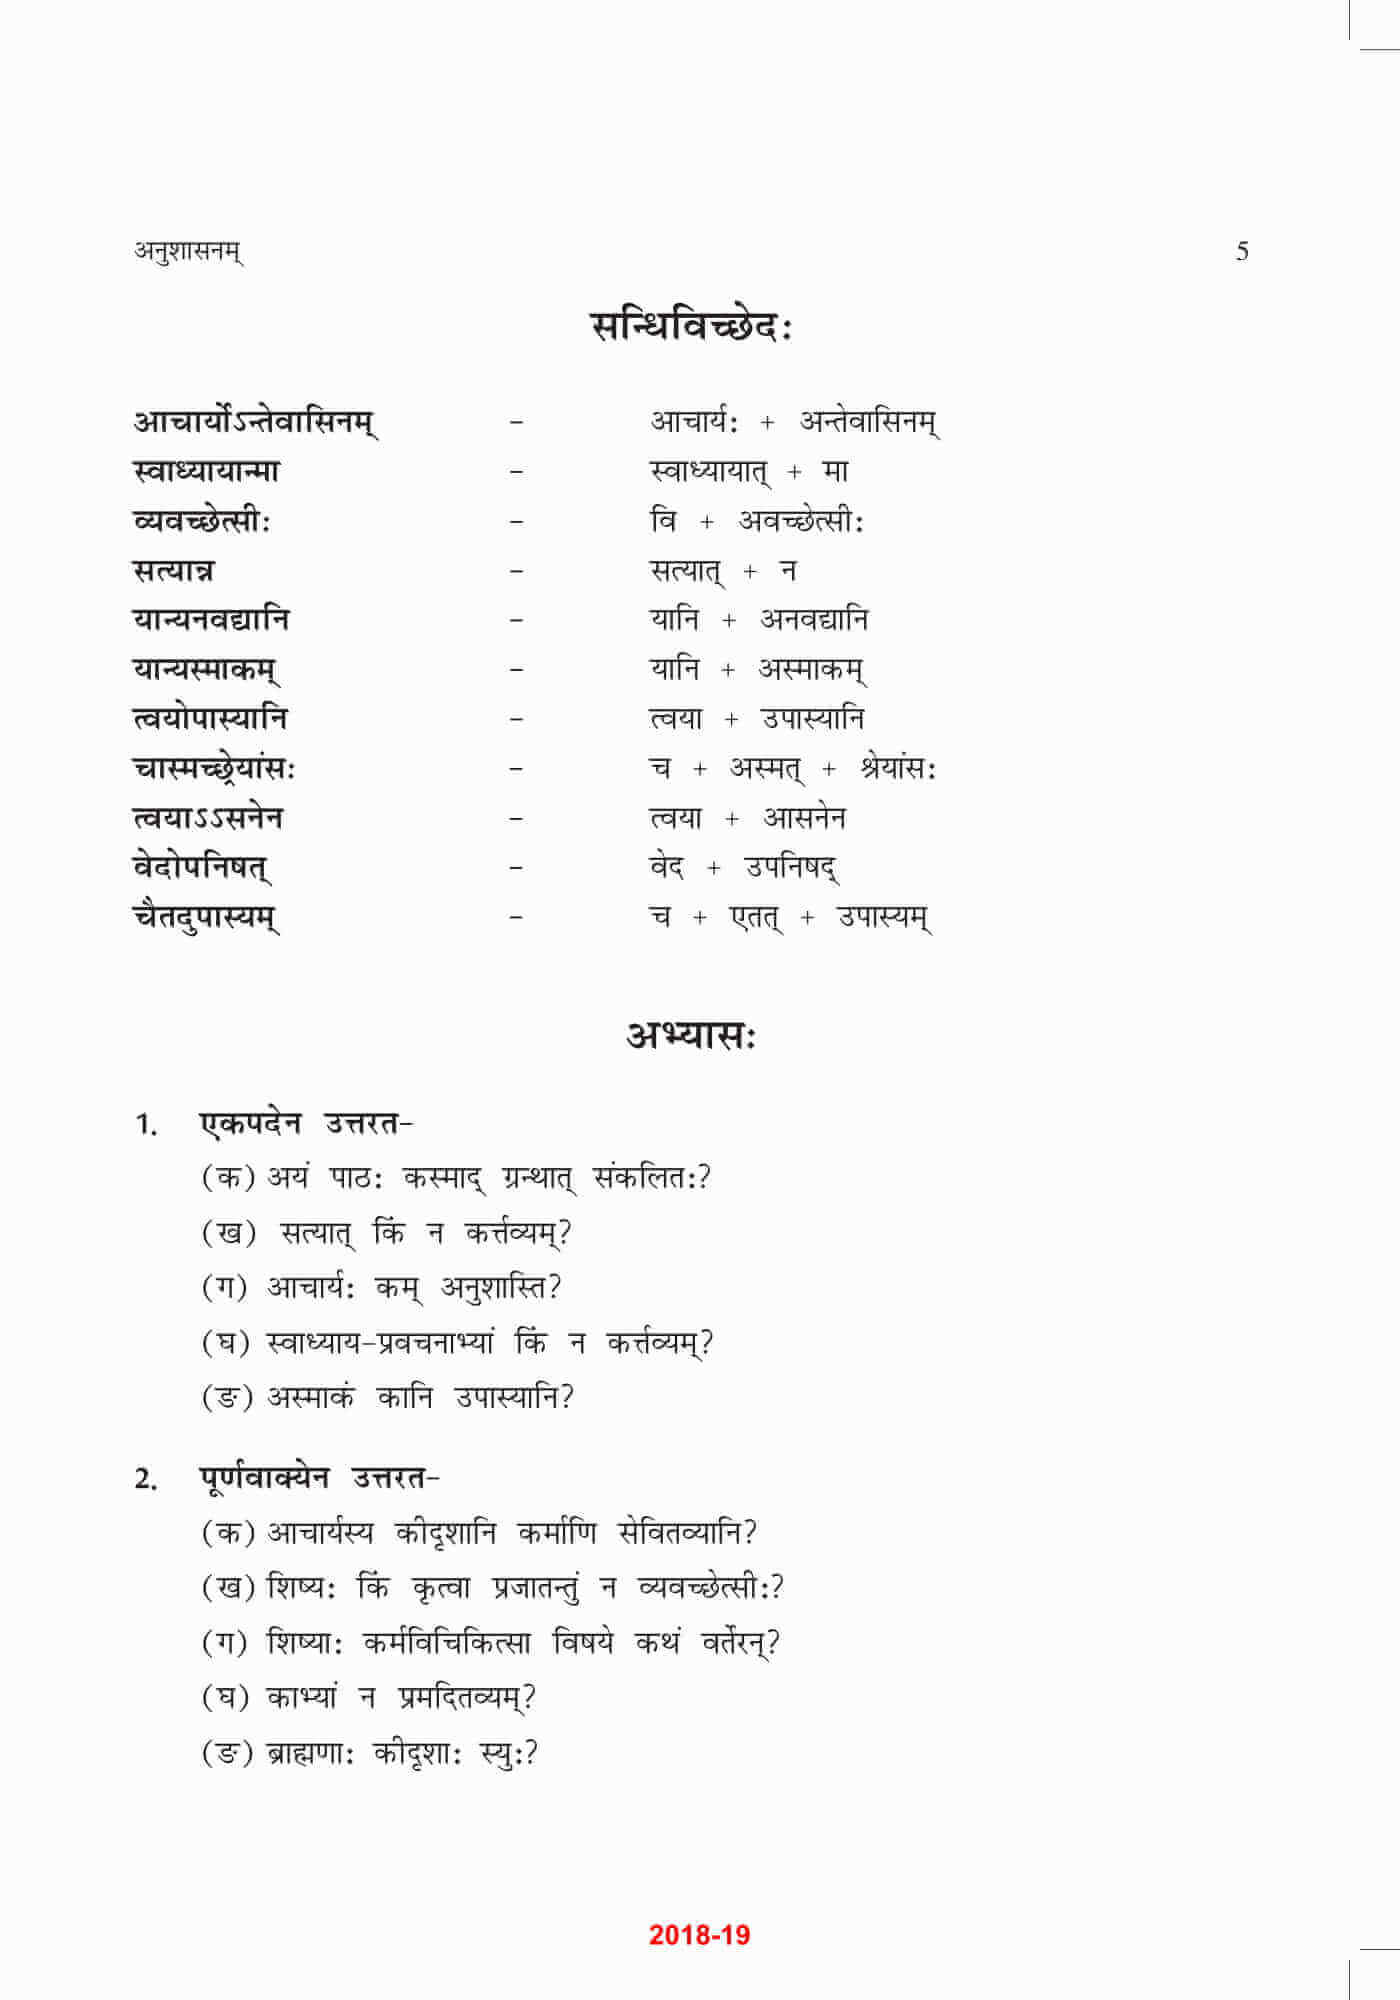 NCERT Solutions For Class 12 Sanskrit Bhaswati Chapter 1